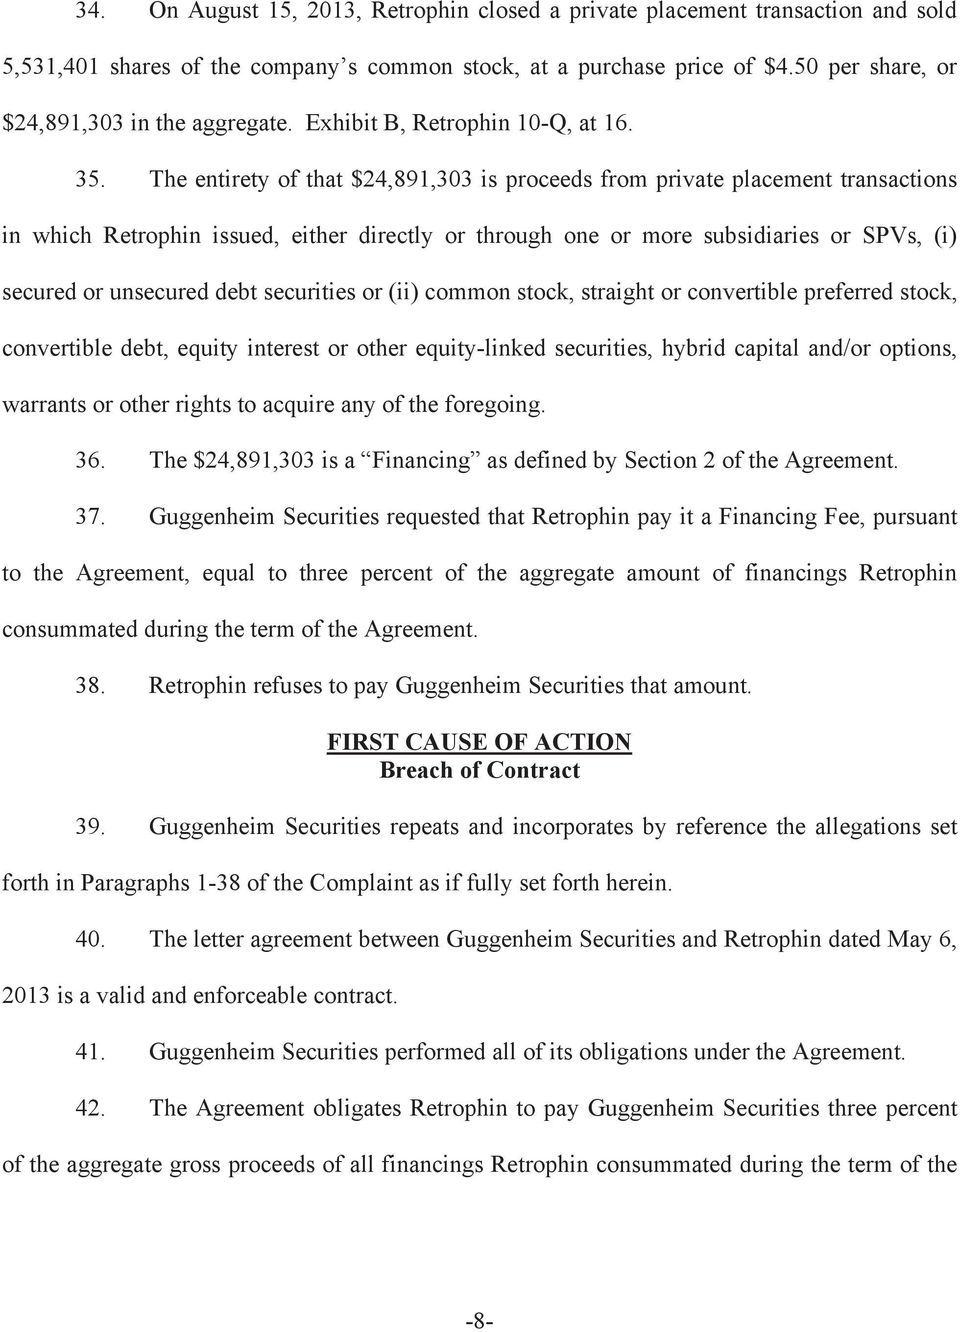 The entirety of that $24,891,303 is proceeds from private placement transactions in which Retrophin issued, either directly or through one or more subsidiaries or SPVs, (i) secured or unsecured debt